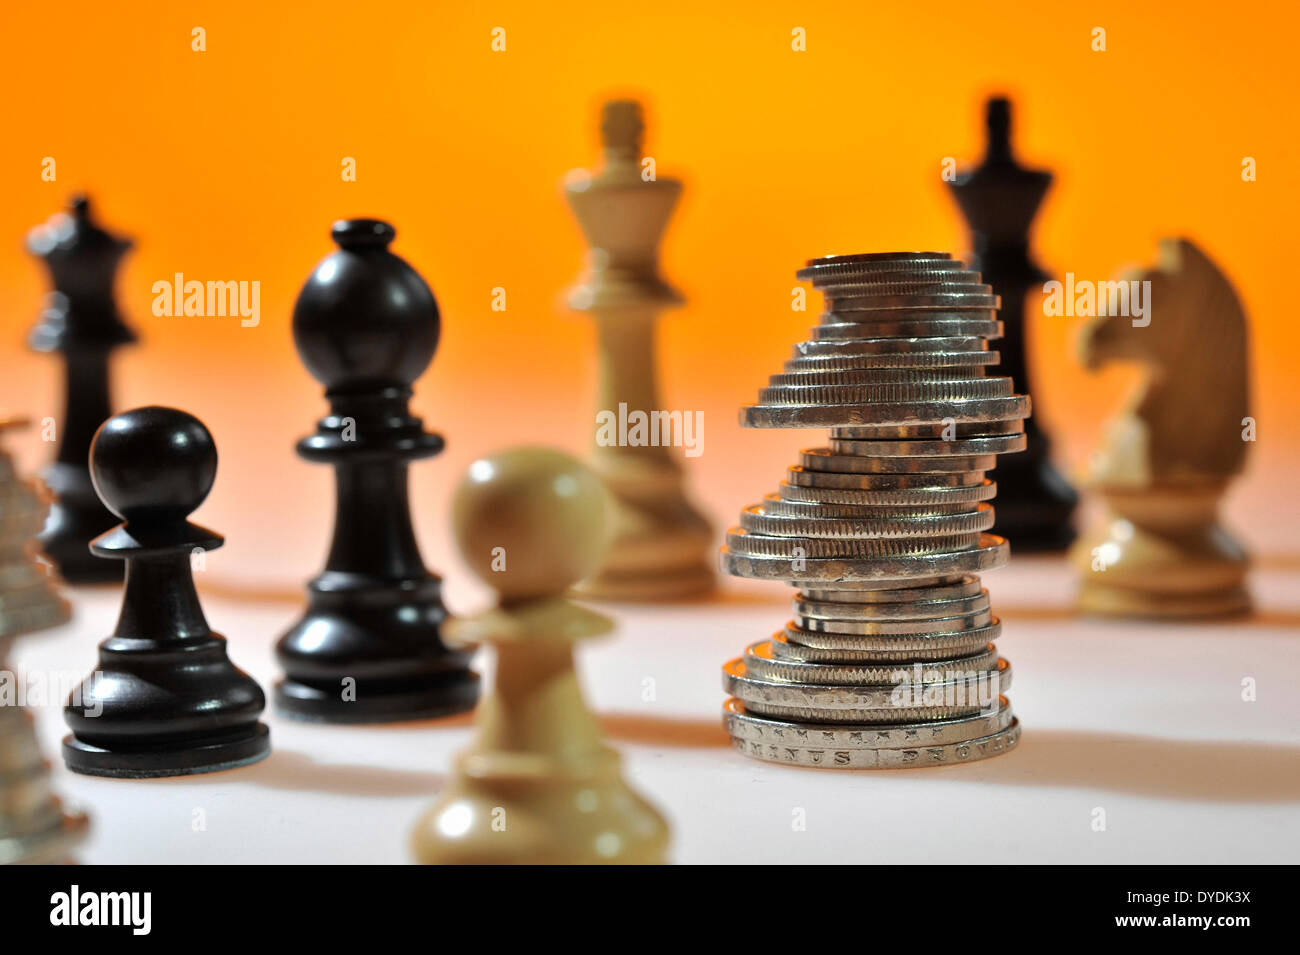 Chess Check Chess Pieces Play Game Strategy Money Coins